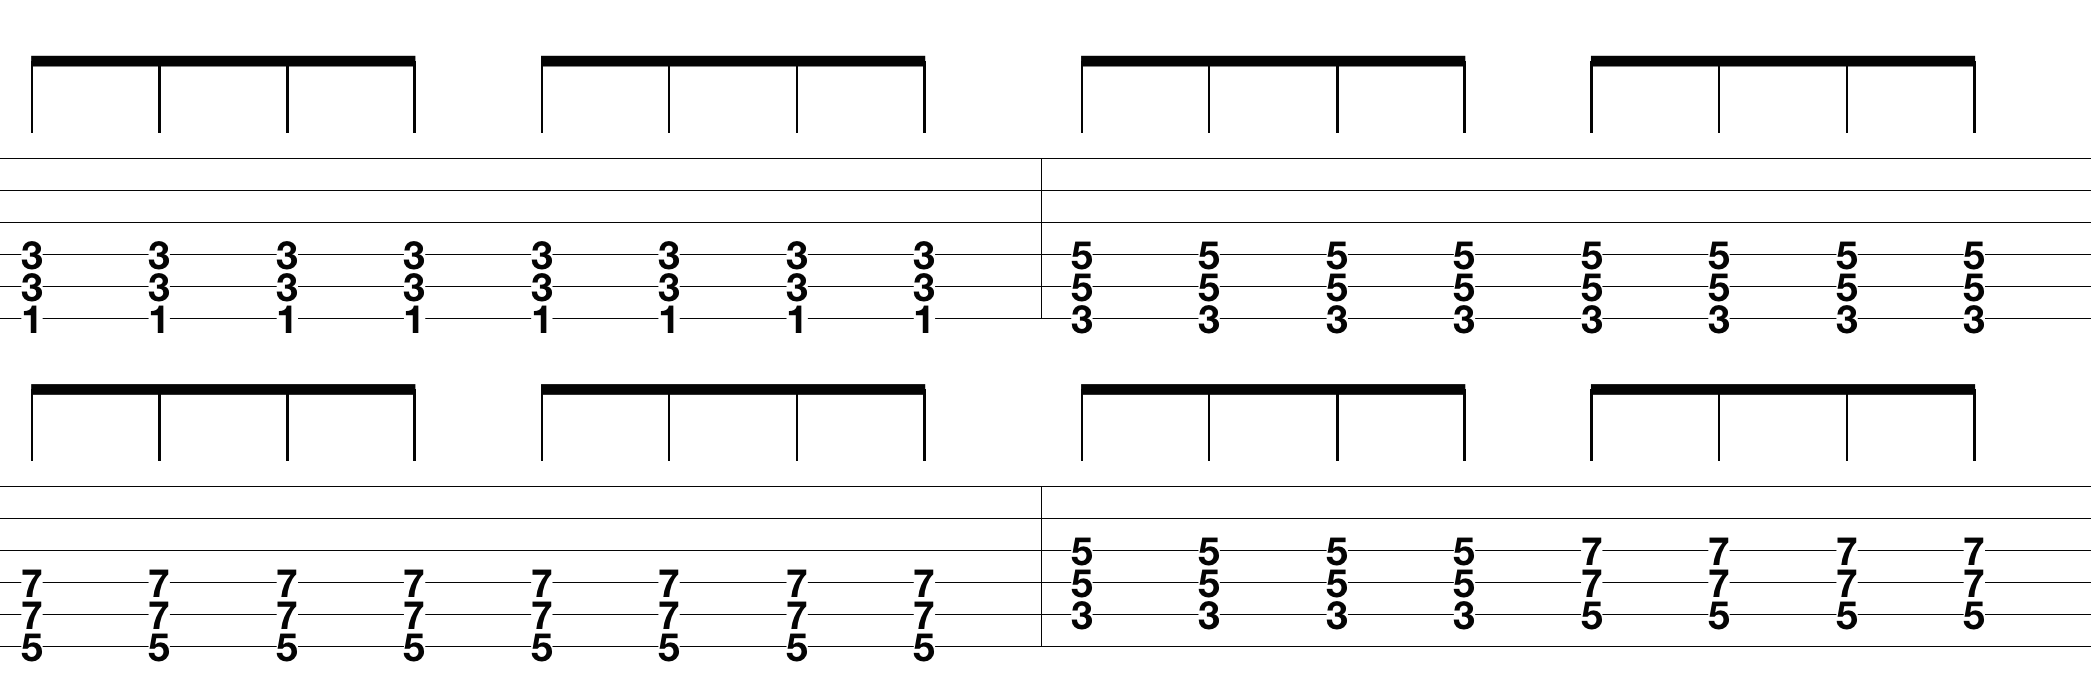 learn-rock-guitar_2.png